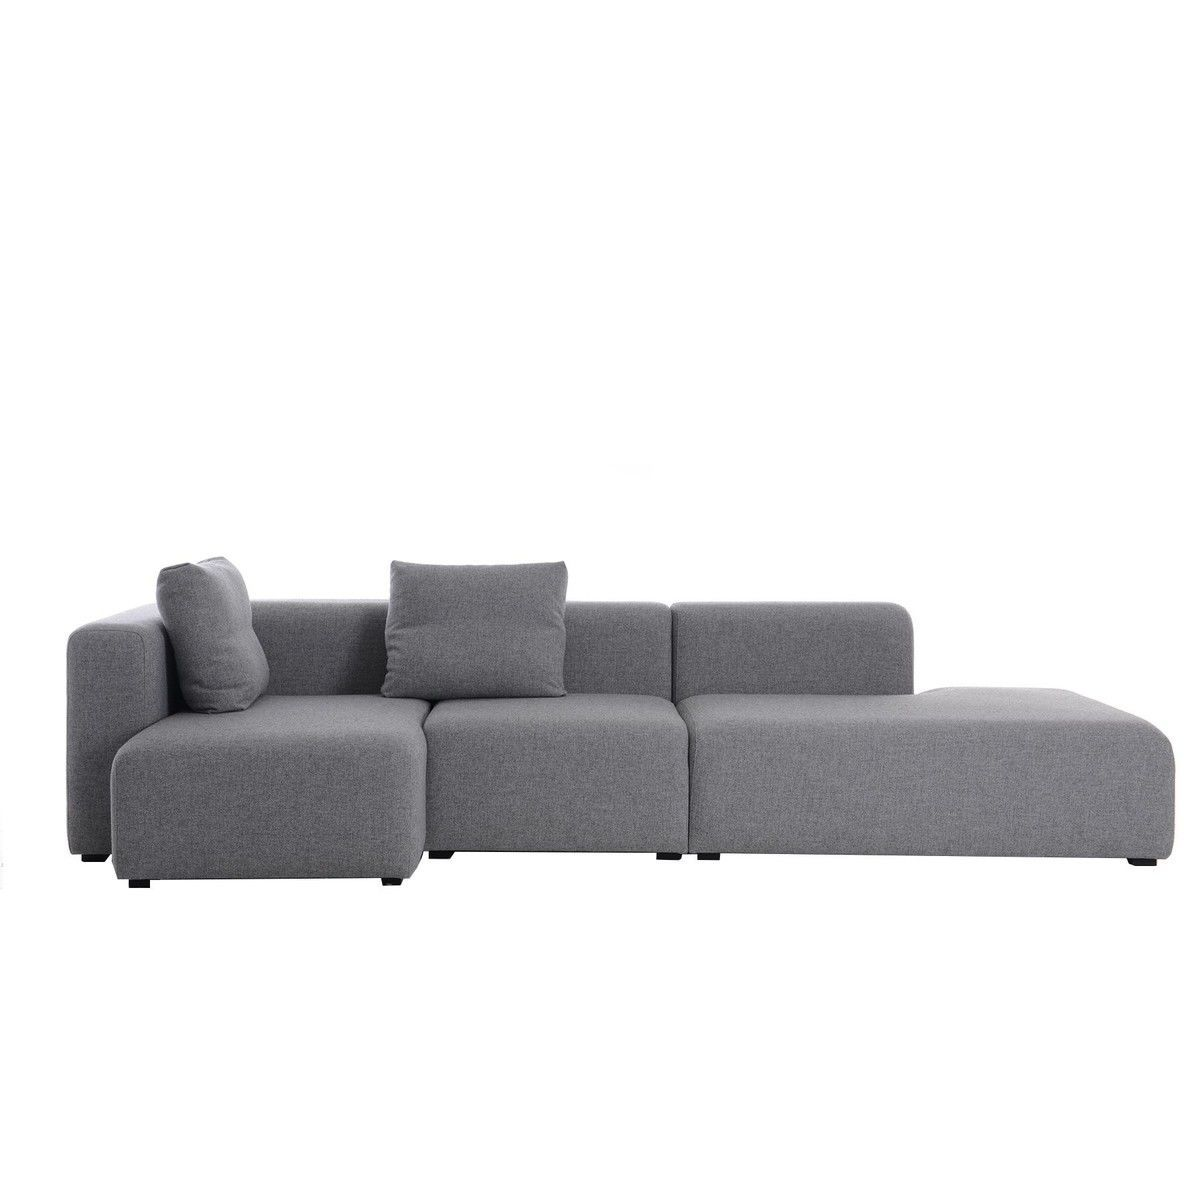 mags lounge sofa hay. Black Bedroom Furniture Sets. Home Design Ideas